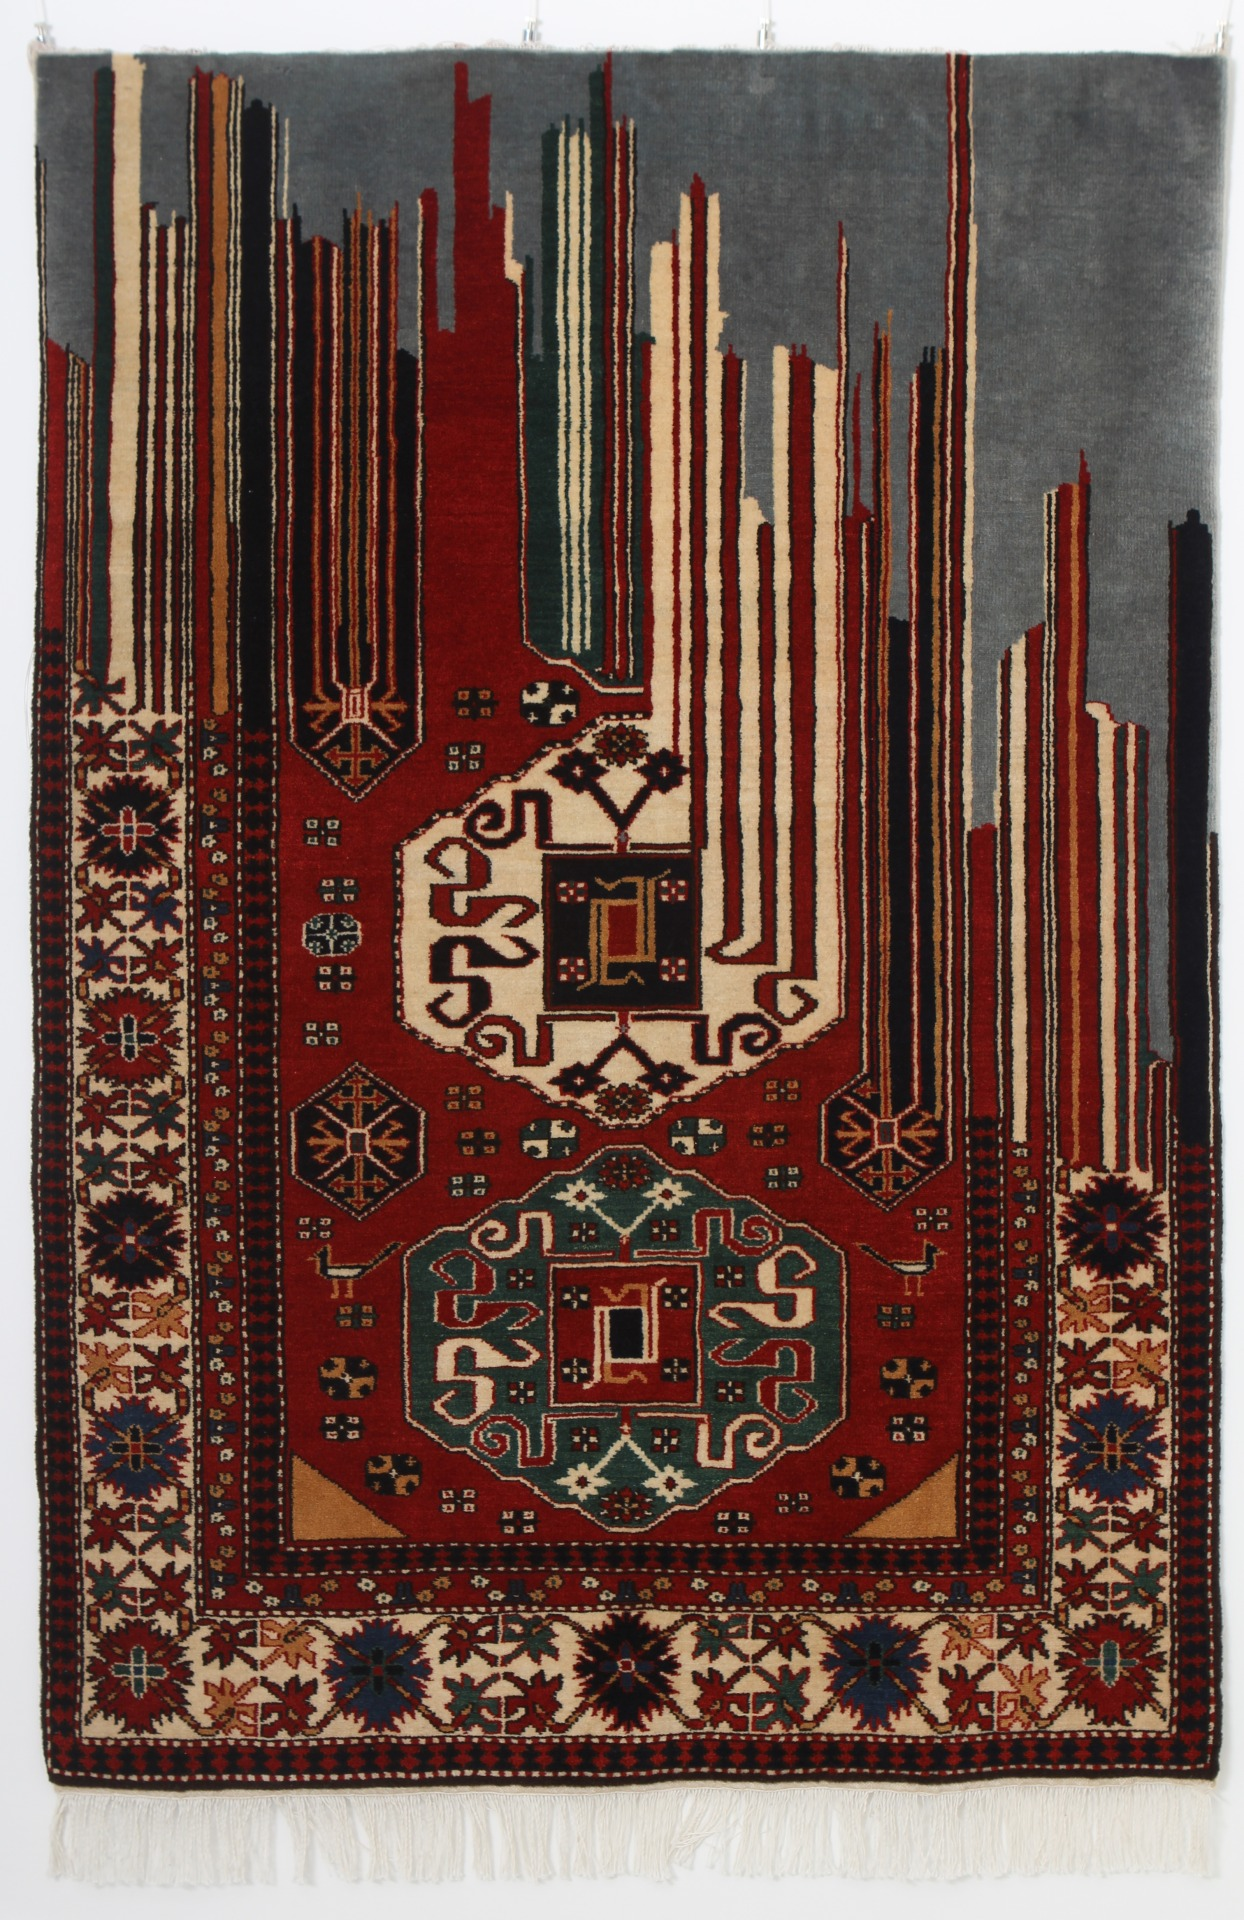 Restrain - Handmade Woolen Carpet by Faig Ahmed